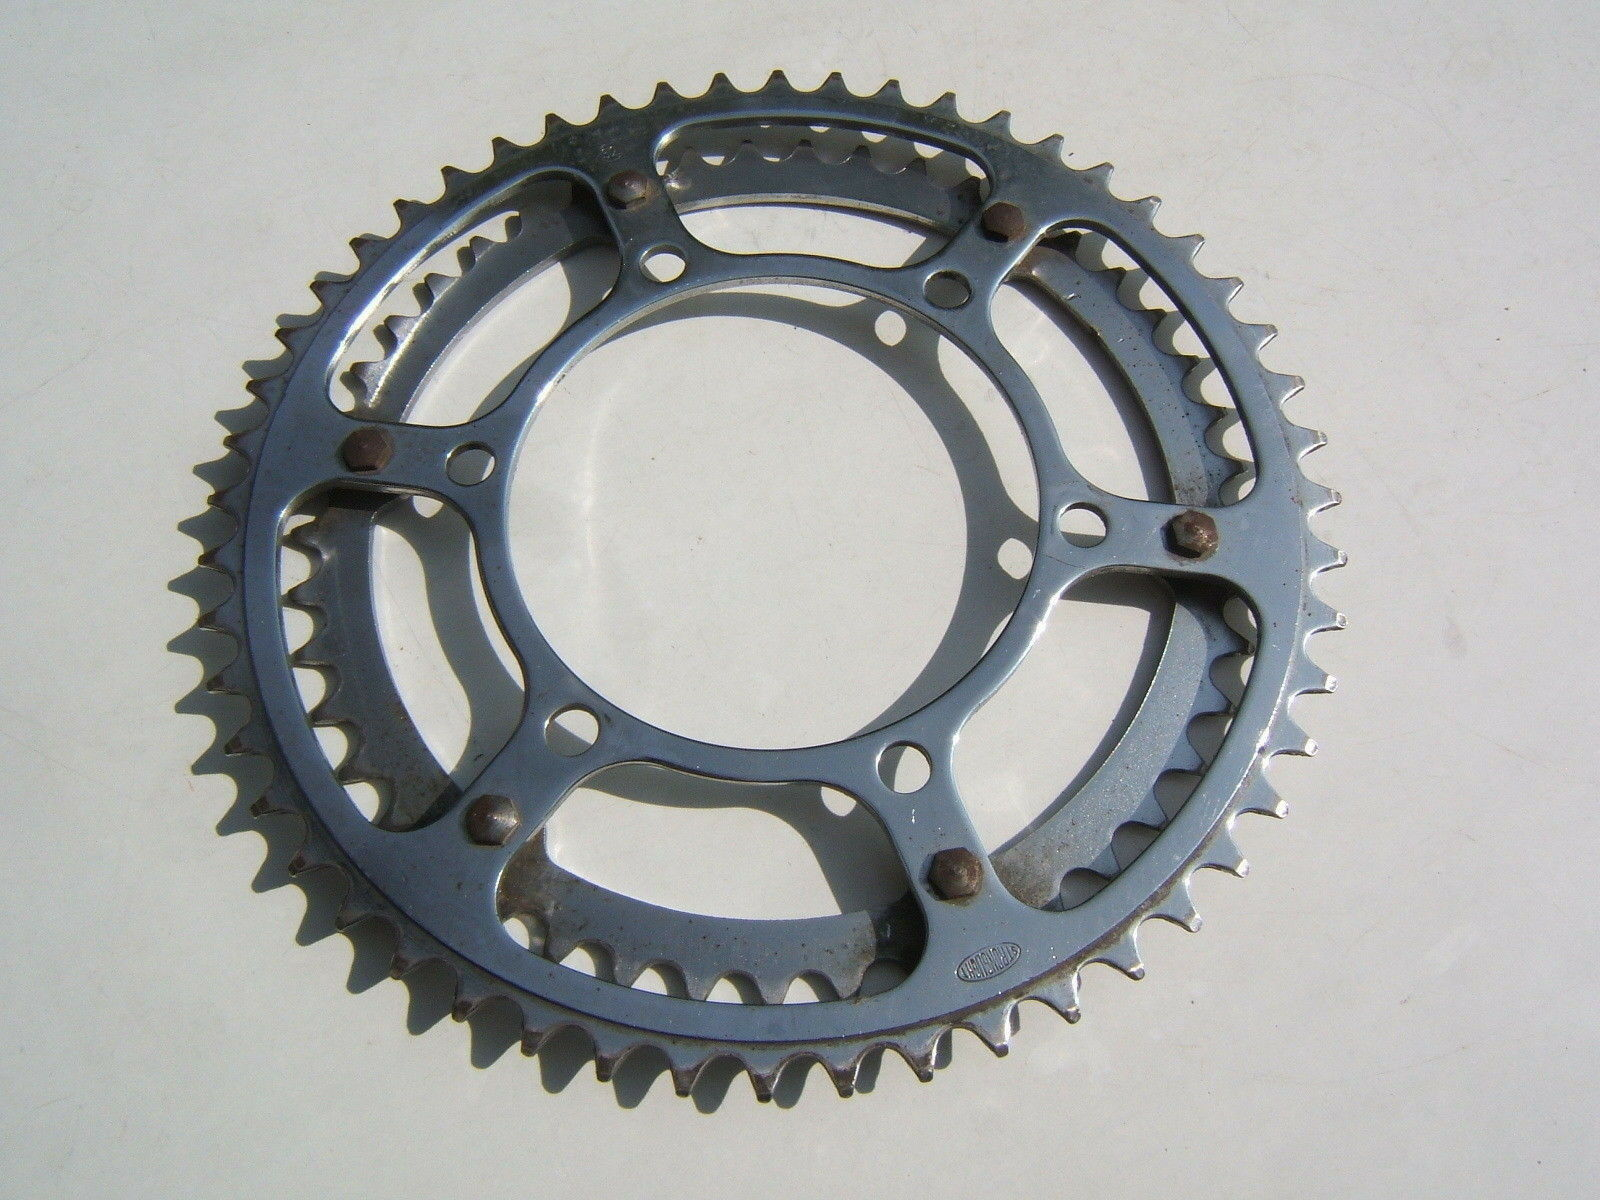 STRONGLIGHT  TWIN STEEL CHAINRINGS BCD 116mm 42 52 TEETH   FRANCE 70's - USED VGC  all goods are specials